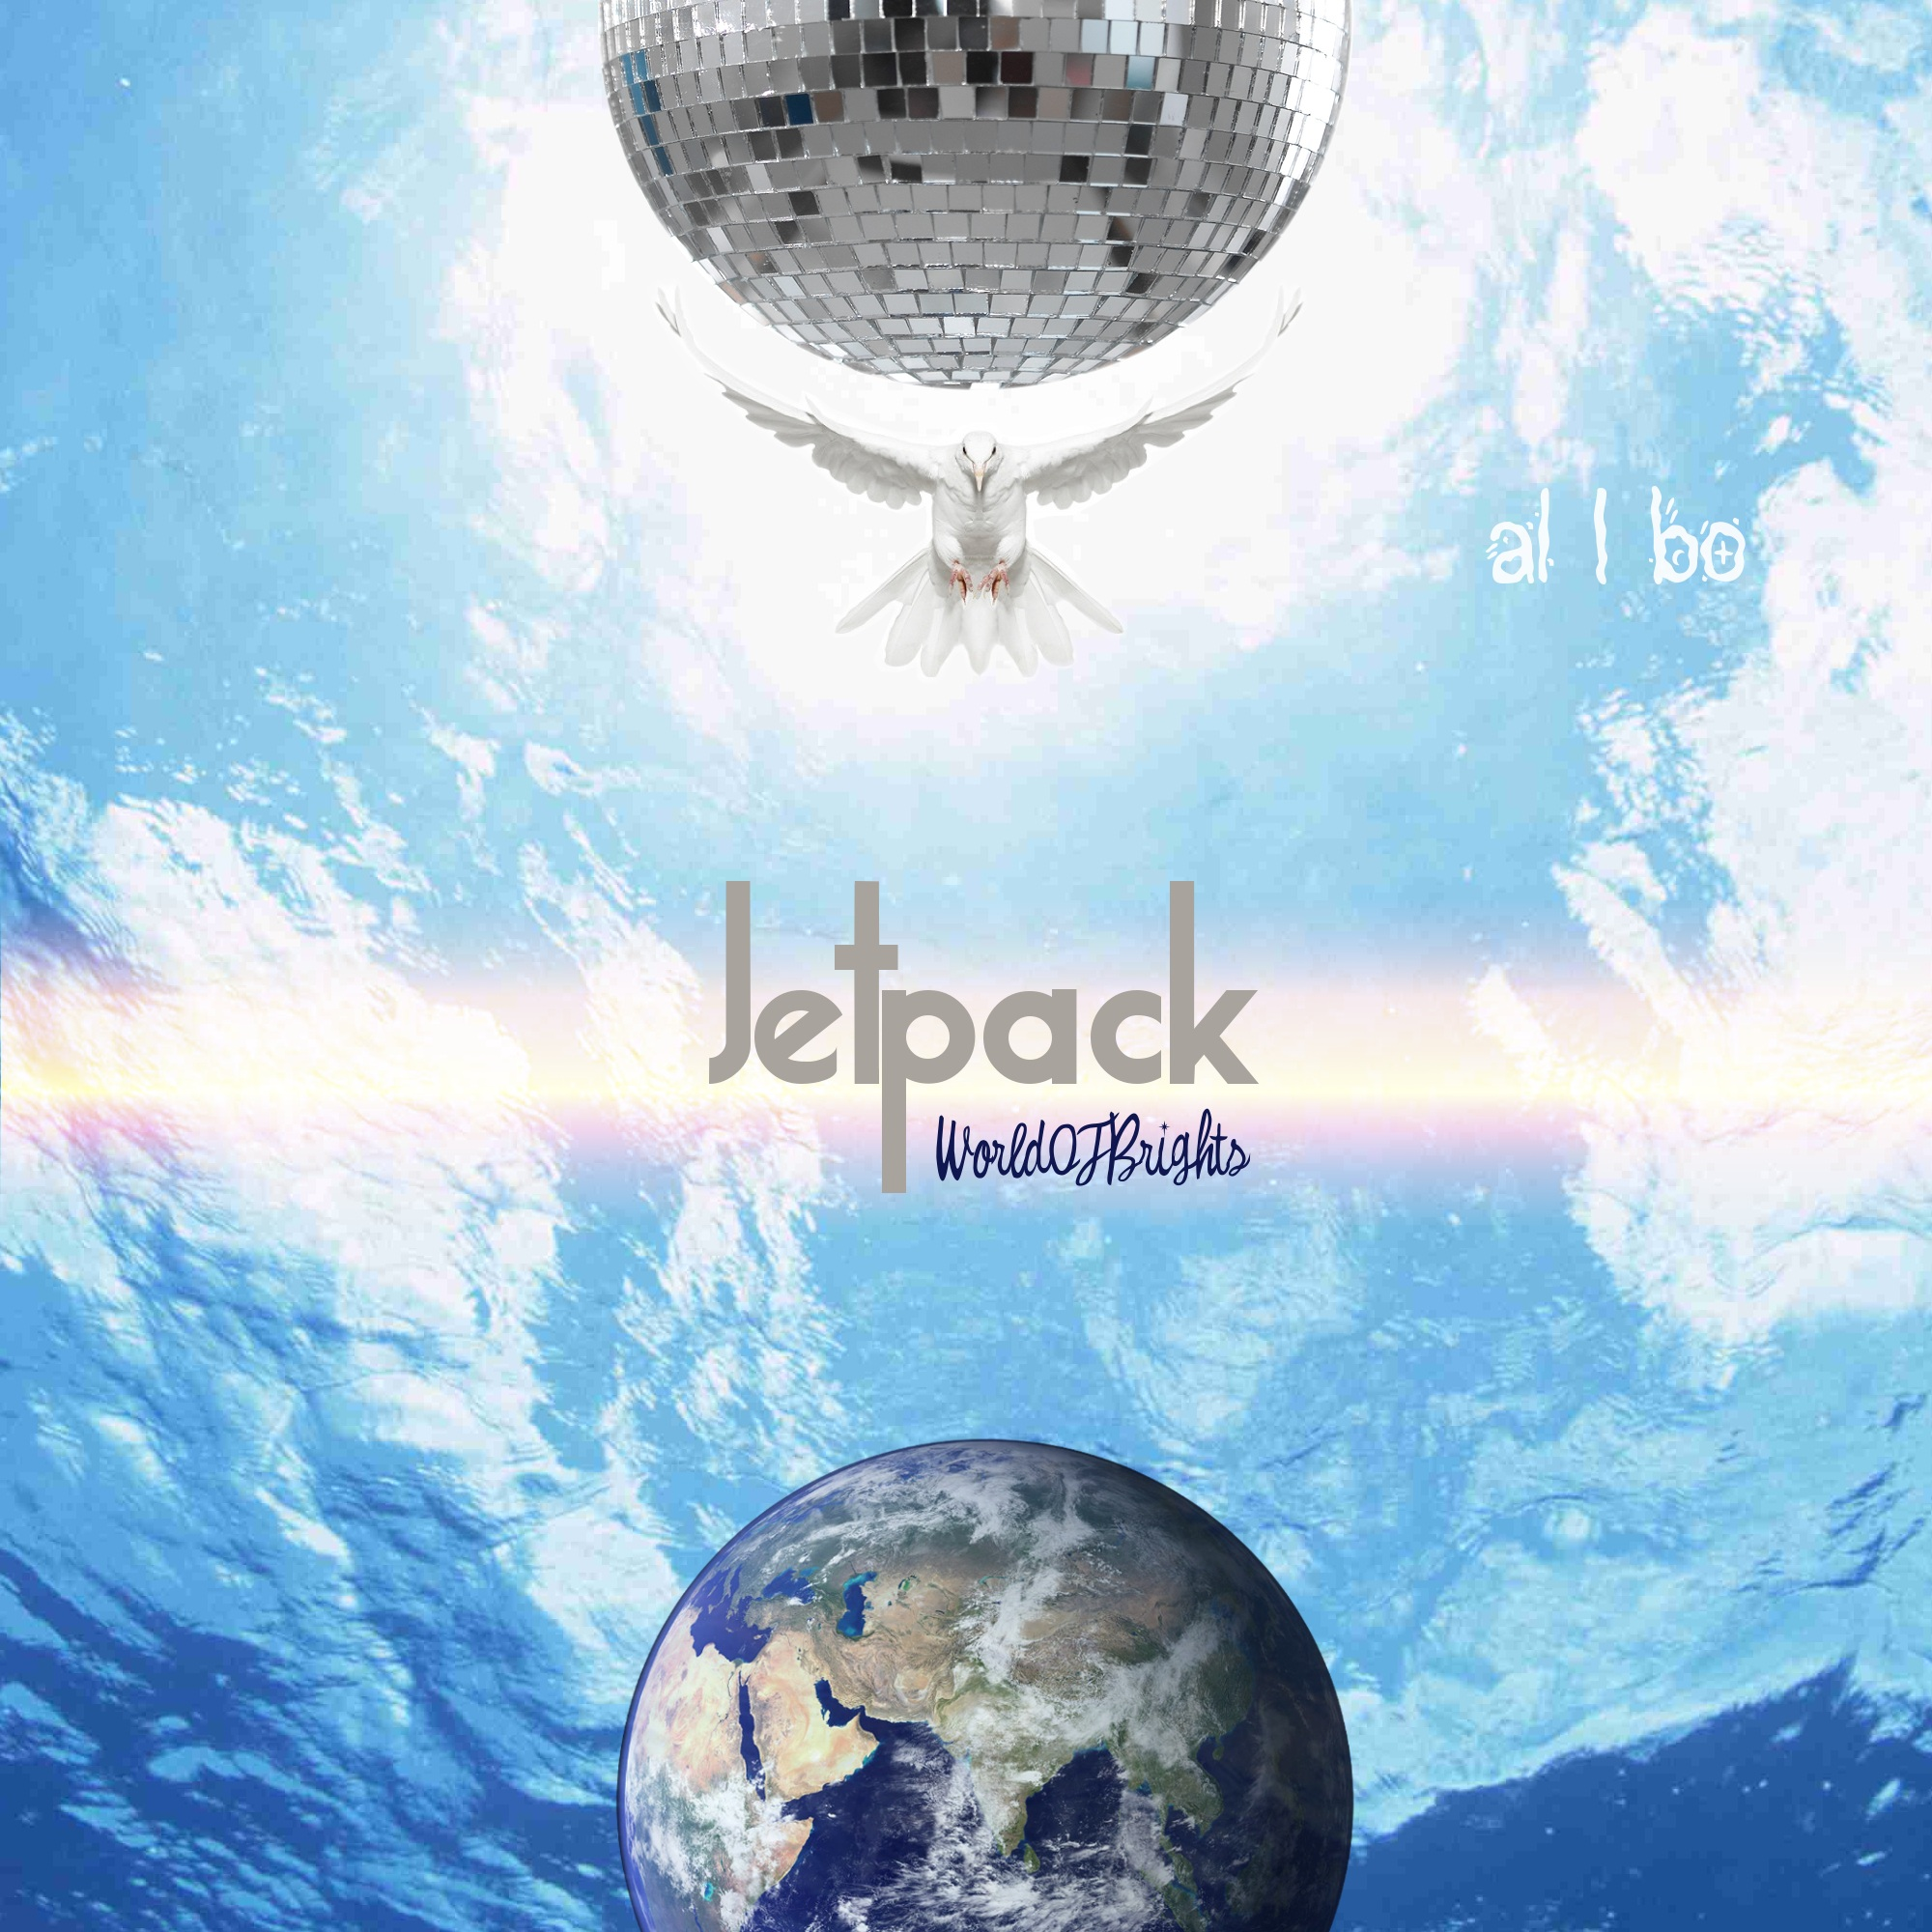 al l bo - Jetpack by WorldOfBrights